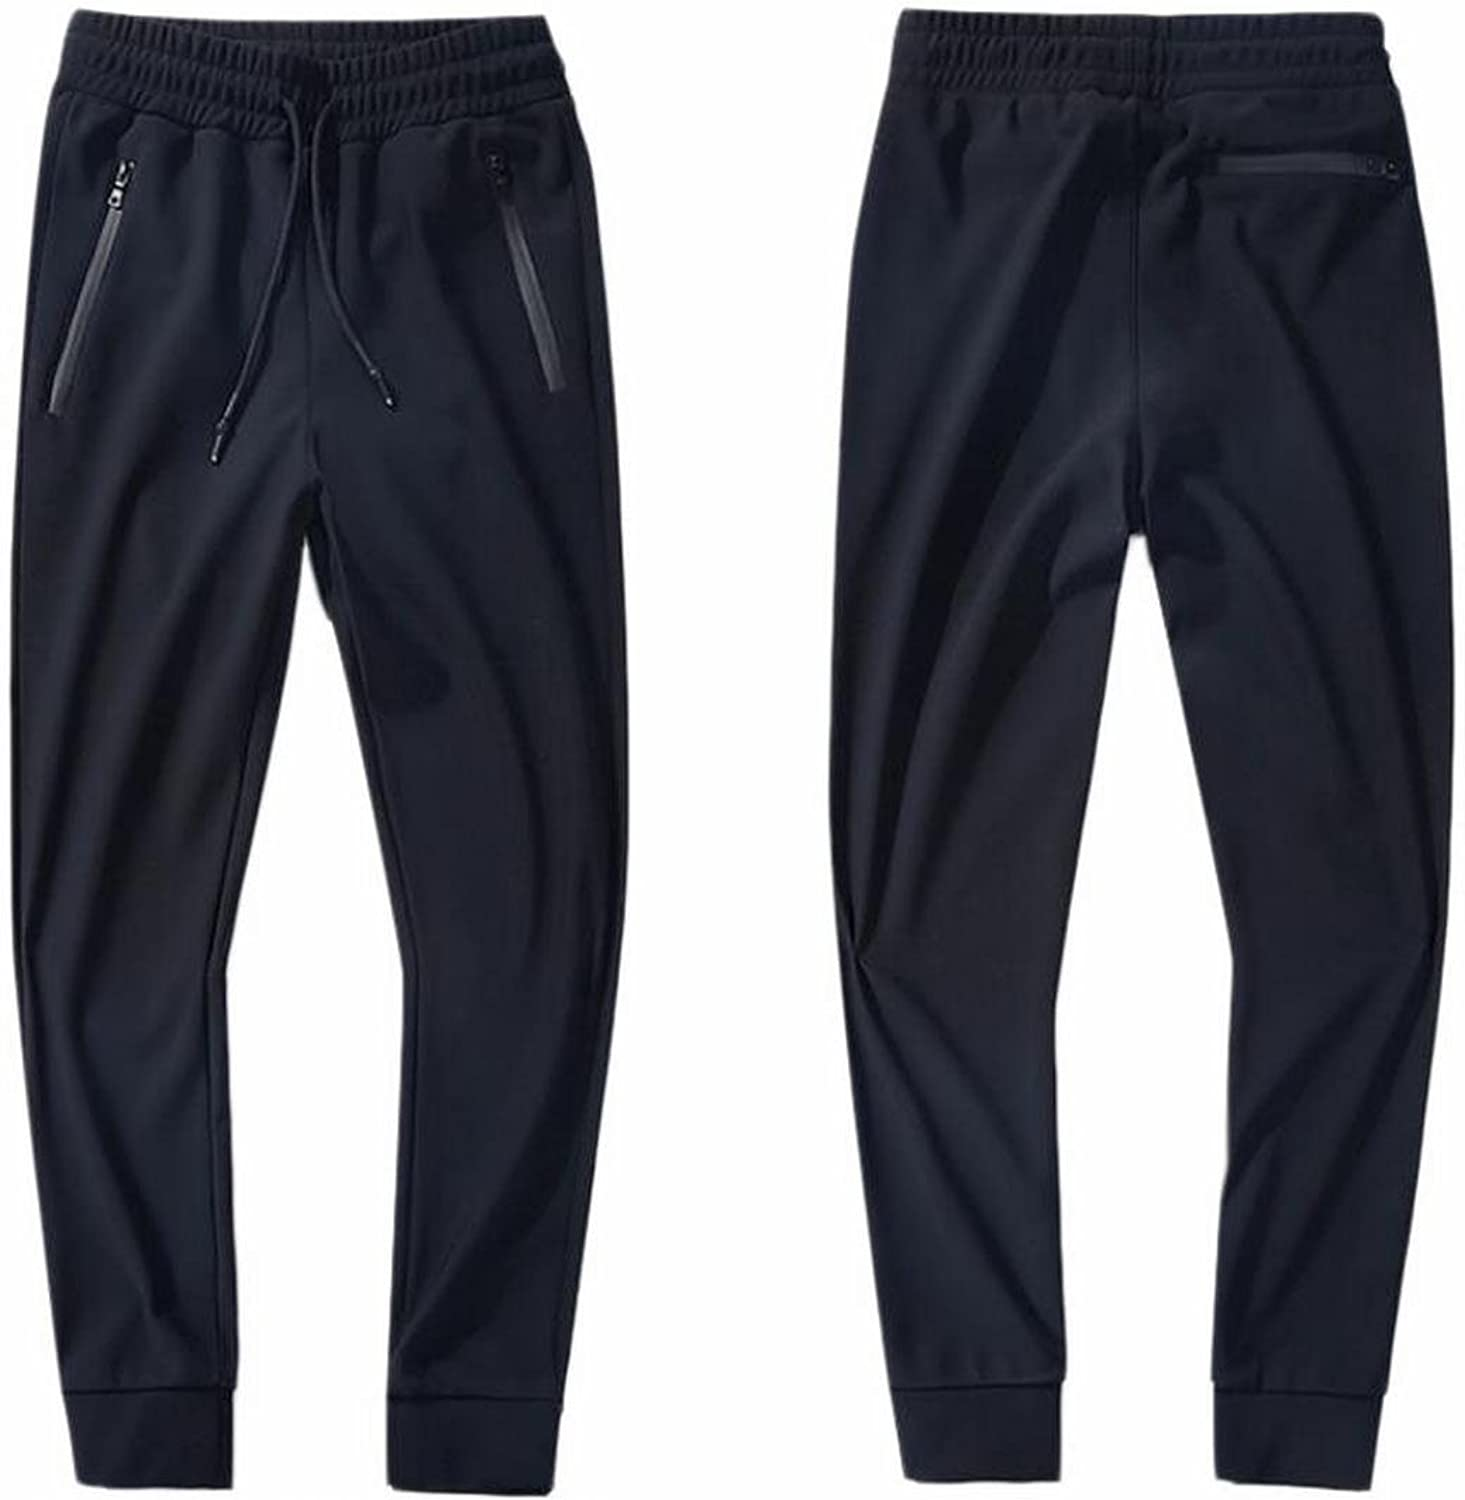 HTOOHTOOH Mens Casual Jogger Sweat Pants Cotton Active Elastic Waist Trousers